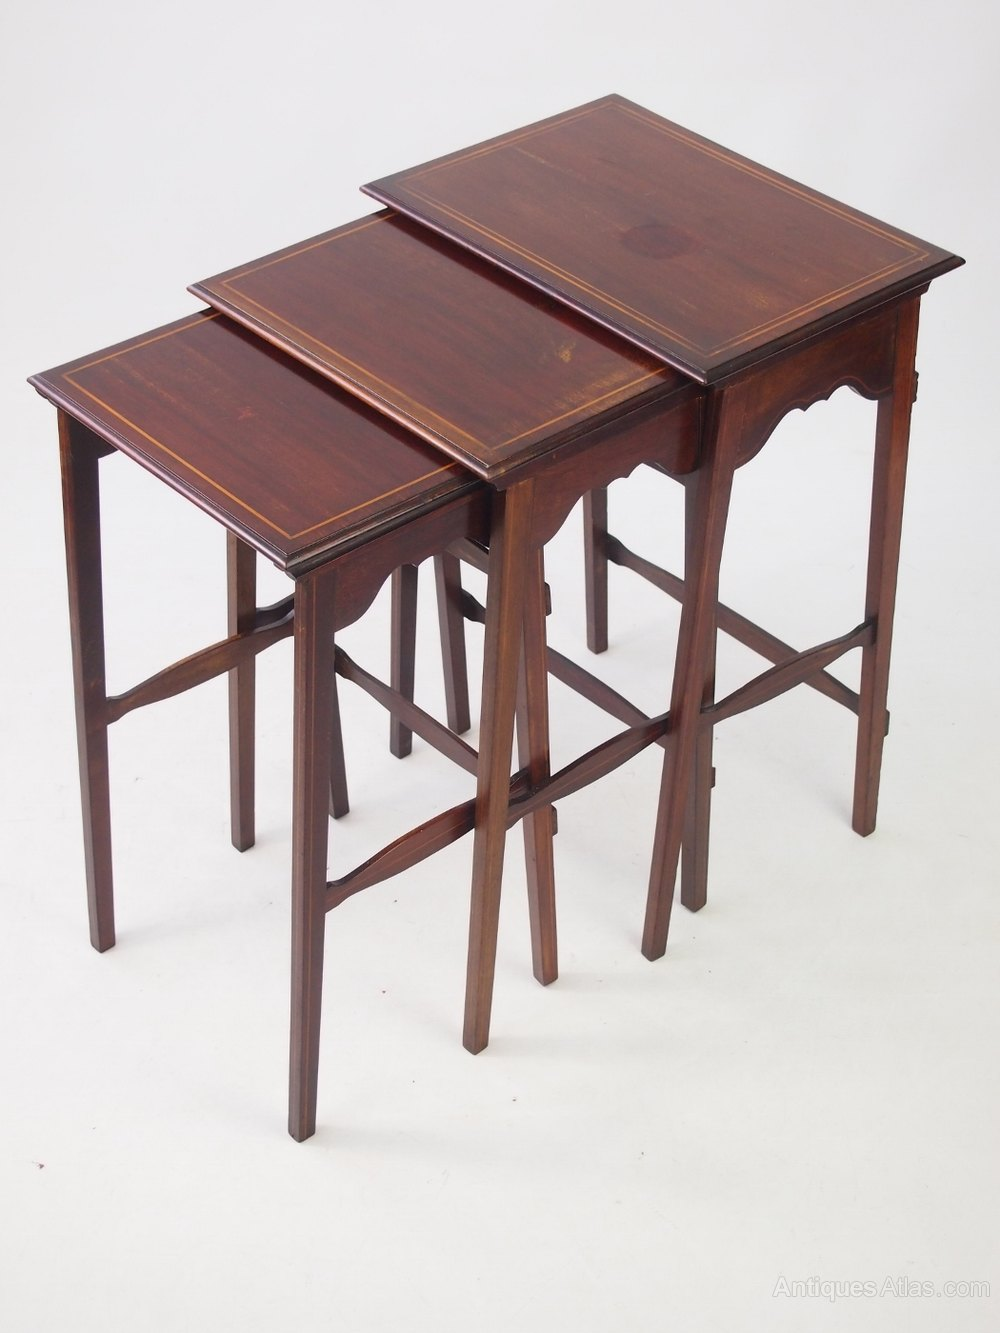 Small edwardian mahogany nest of tables antiques atlas for Small nest of tables